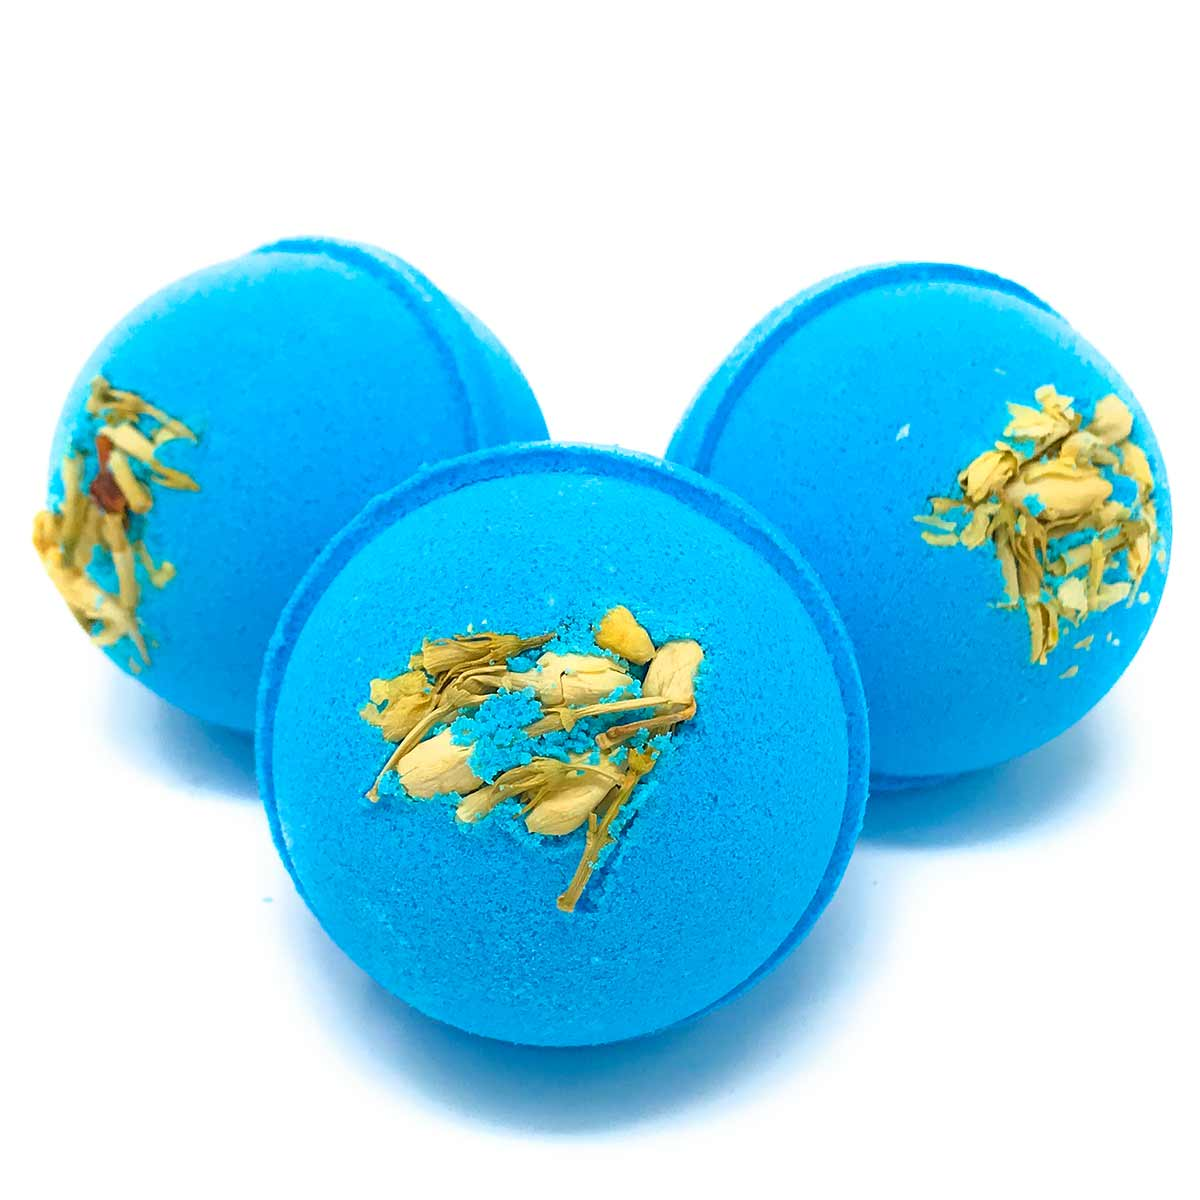 Bath Bombs - Tuberose and Jasmine 3 oz round